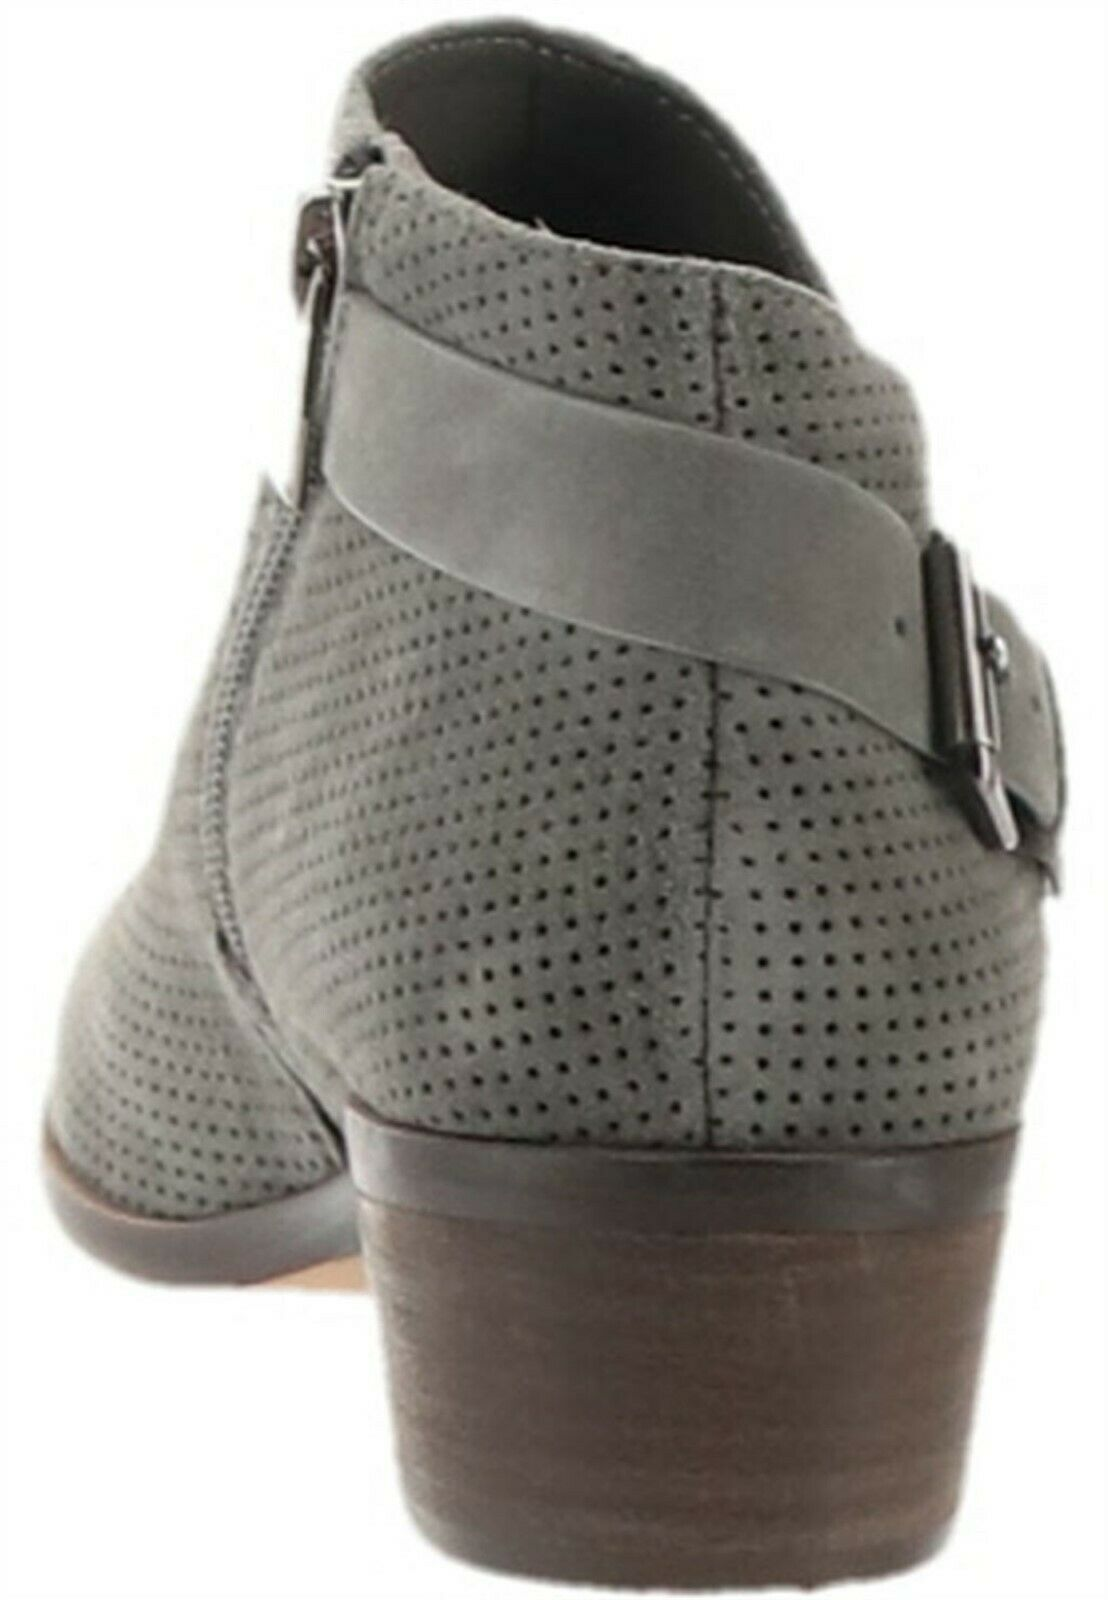 Vince Camuto Suede Booties Buckle Parveen Greystone 5.5M NEW A311049 image 4